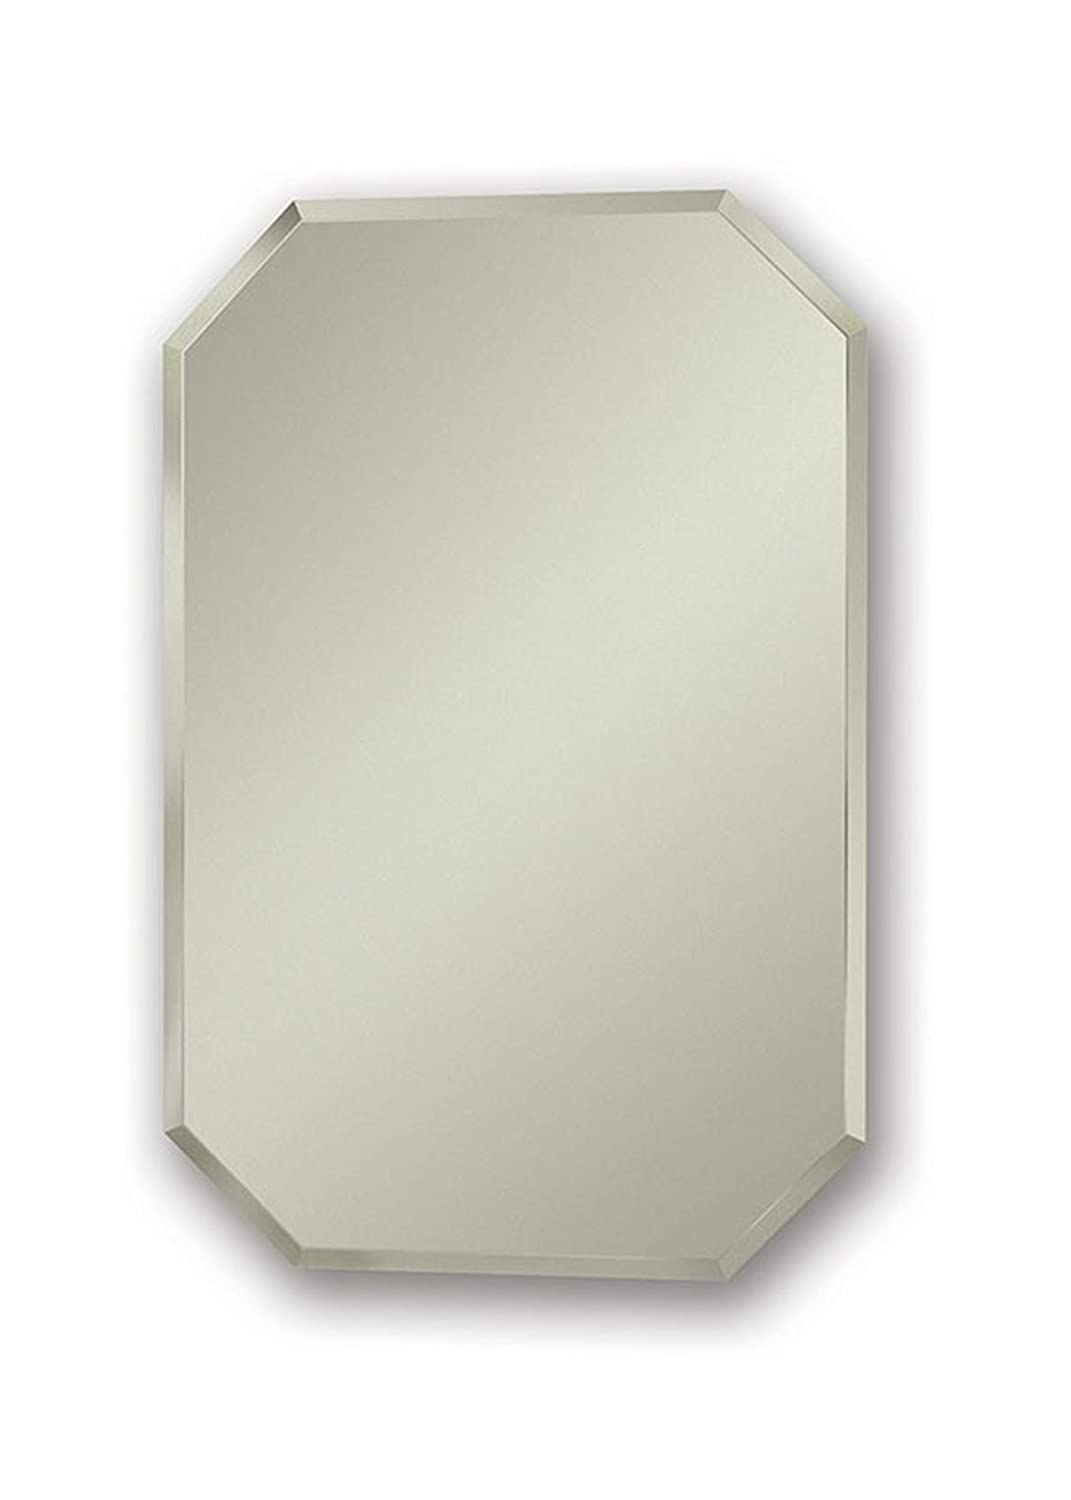 Blanco 442202 Valea Equal Double Low Divide-Metallic Gray Sink